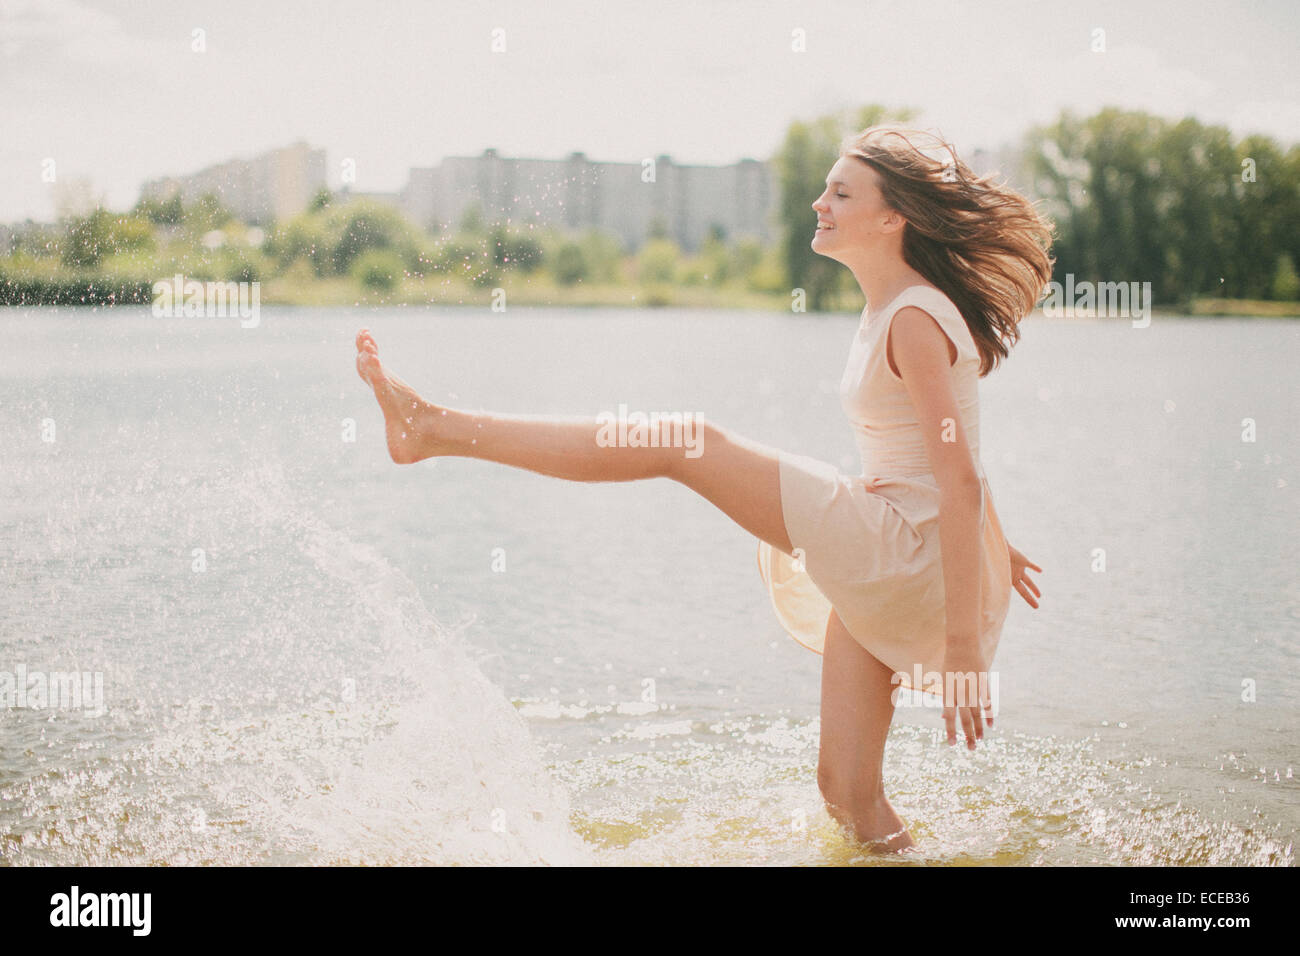 Teenage girl standing in a river kicking water - Stock Image